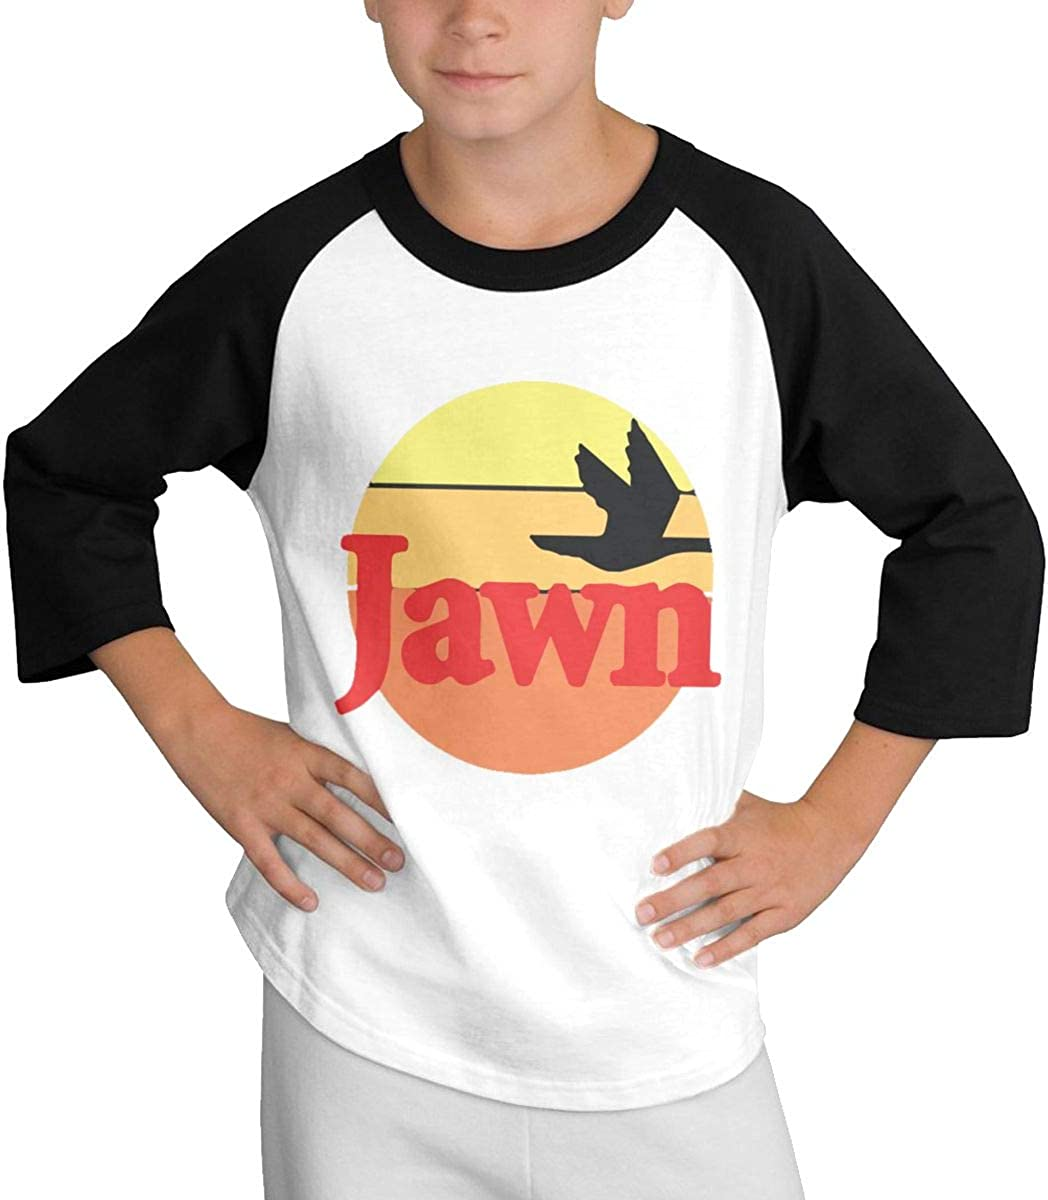 HUCON Jawn Wawa Toddler//Infant Boy Girl T Shirt Cute Short Sleeve Outfits